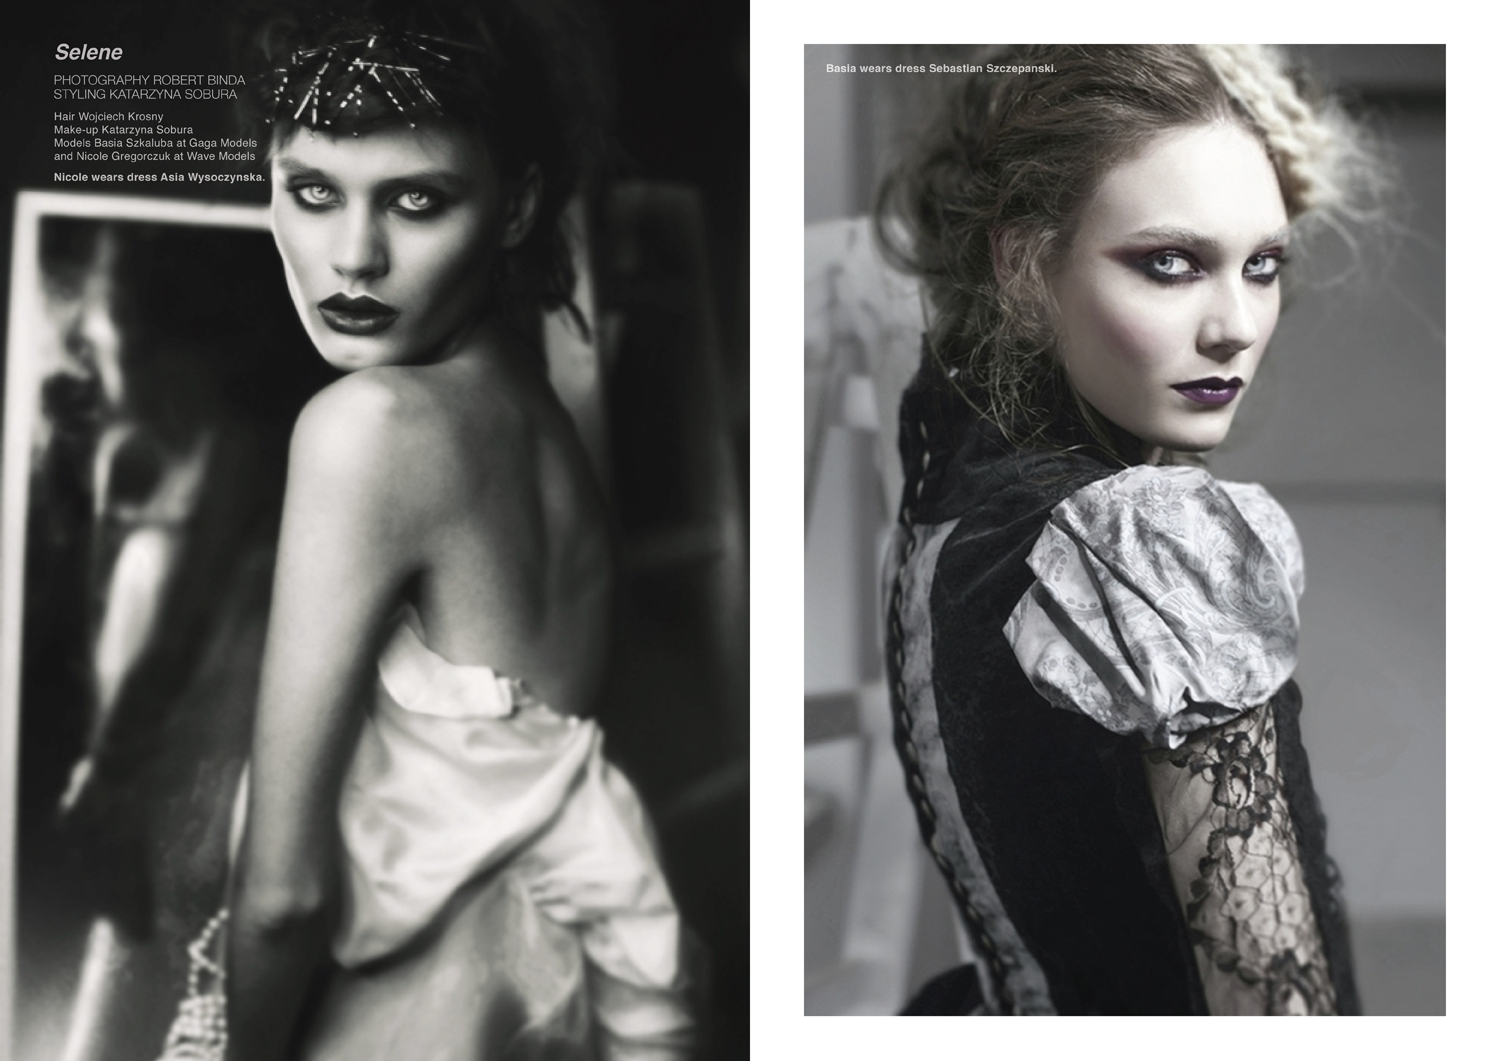 Left page, Nicole wears dress Asia Wysoczynska. Right page, Basia wears dress Sebastian Szczepanski.